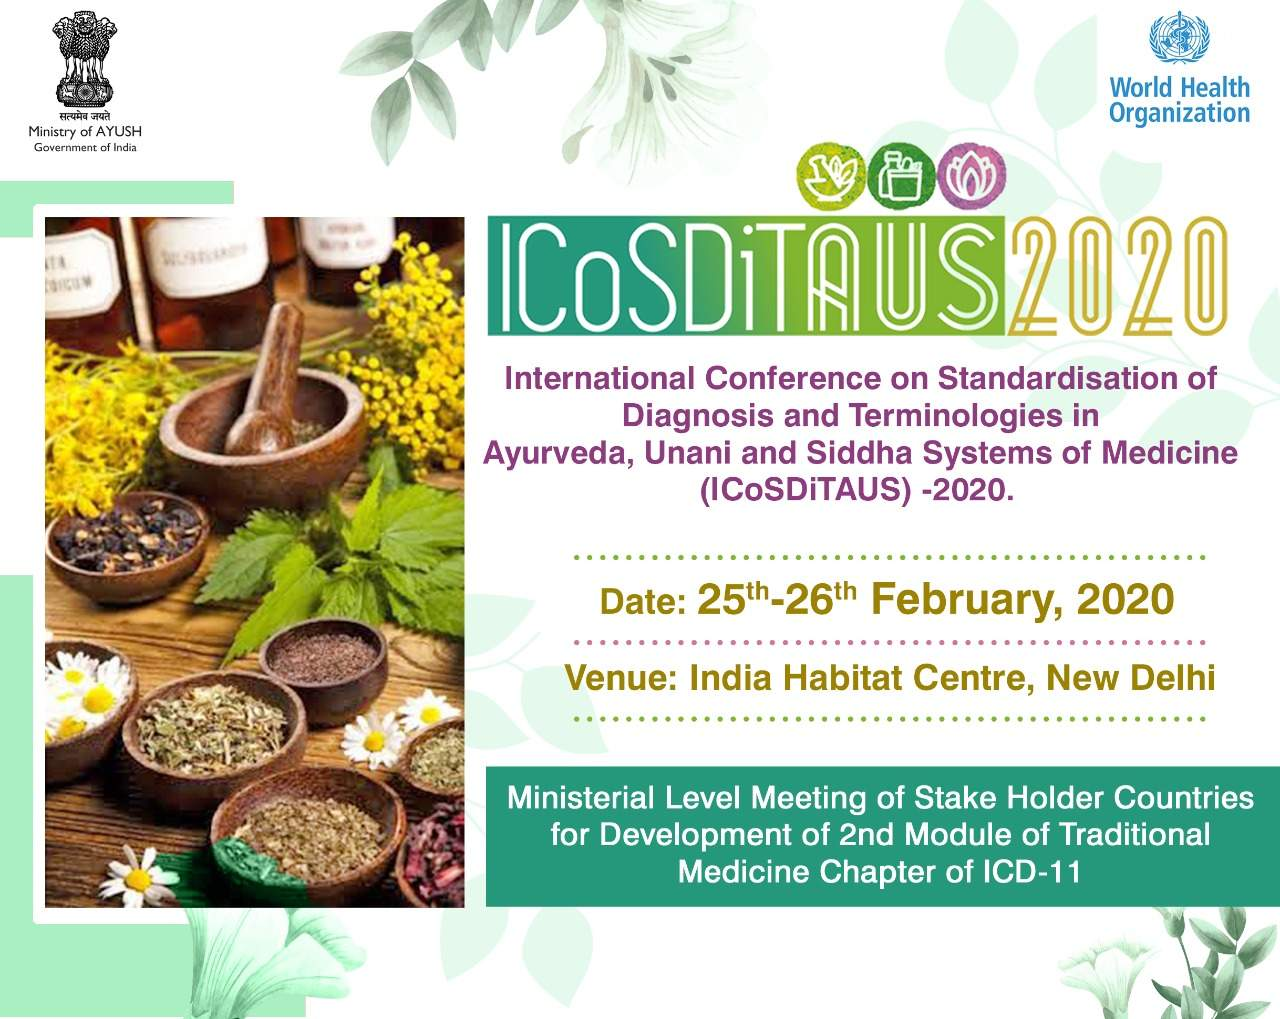 Standardisation of Diagnosis and Terminologies in Ayurveda, Unani and Siddha Systems of Medicine